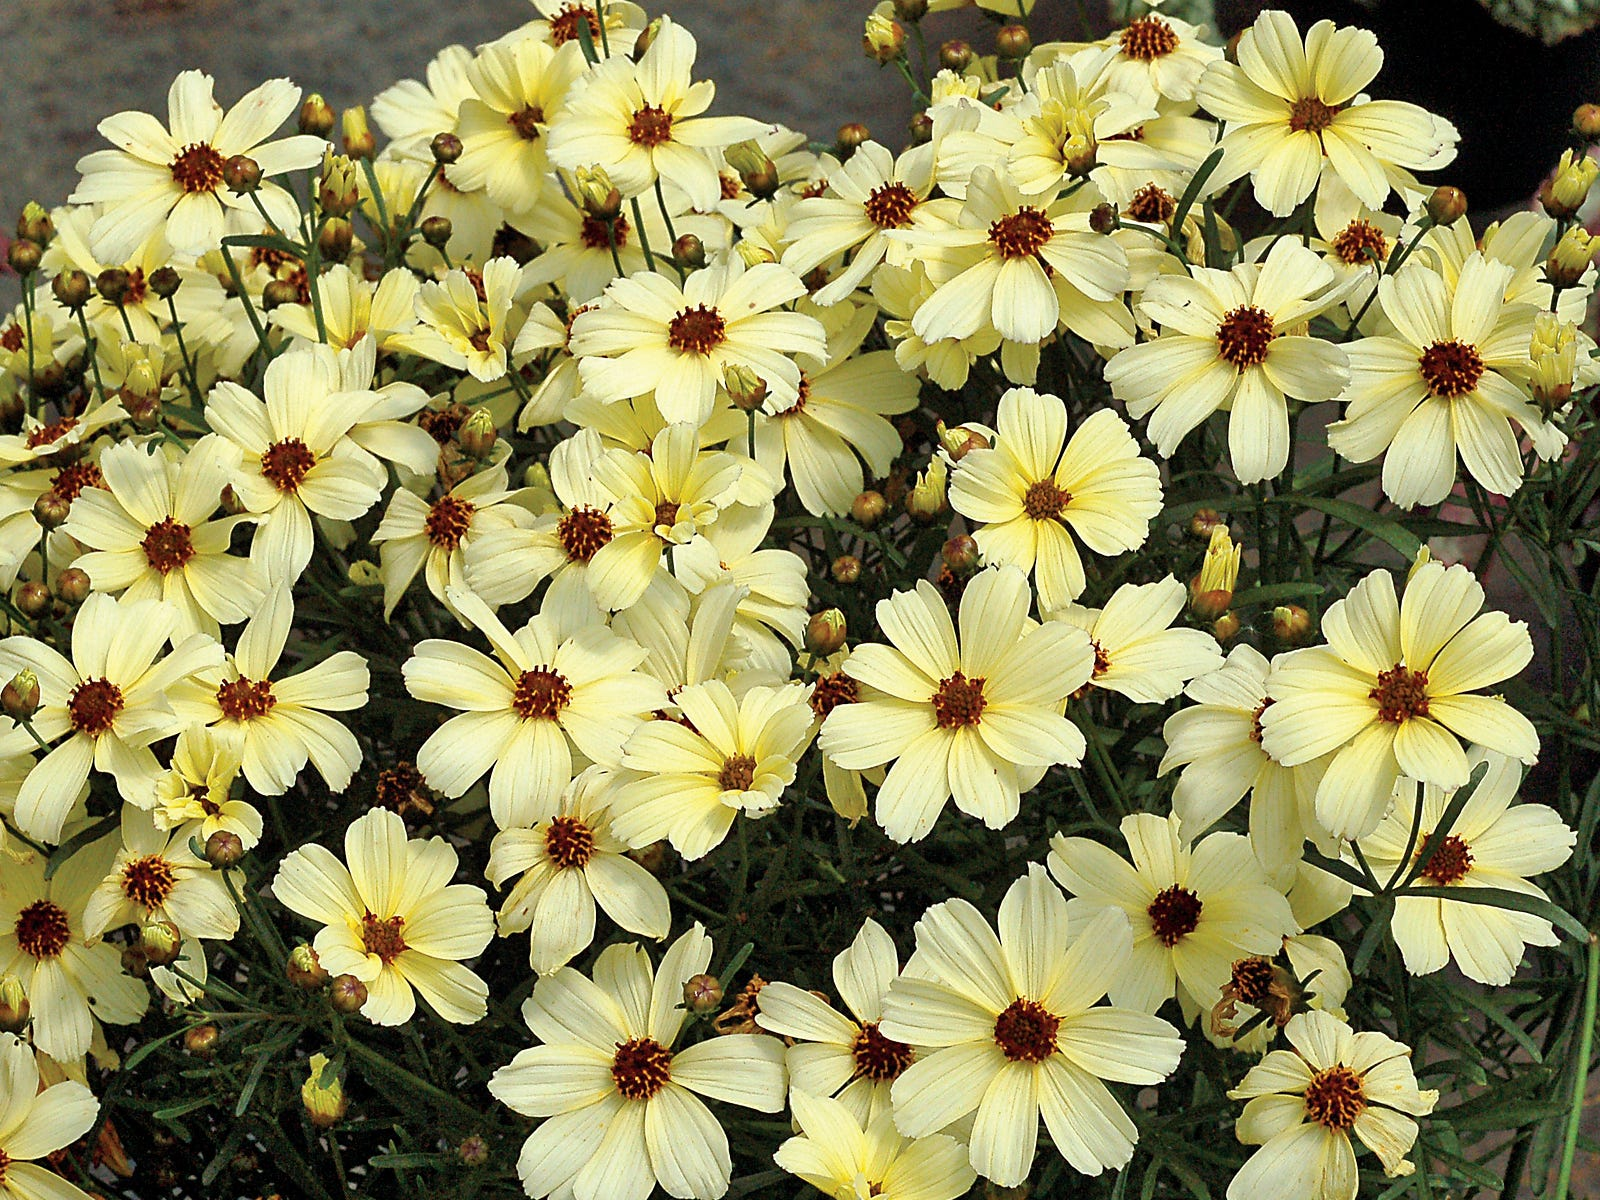 Buttermilk Coreopsis blooms from mid-spring to late summer and attracts butterflies.